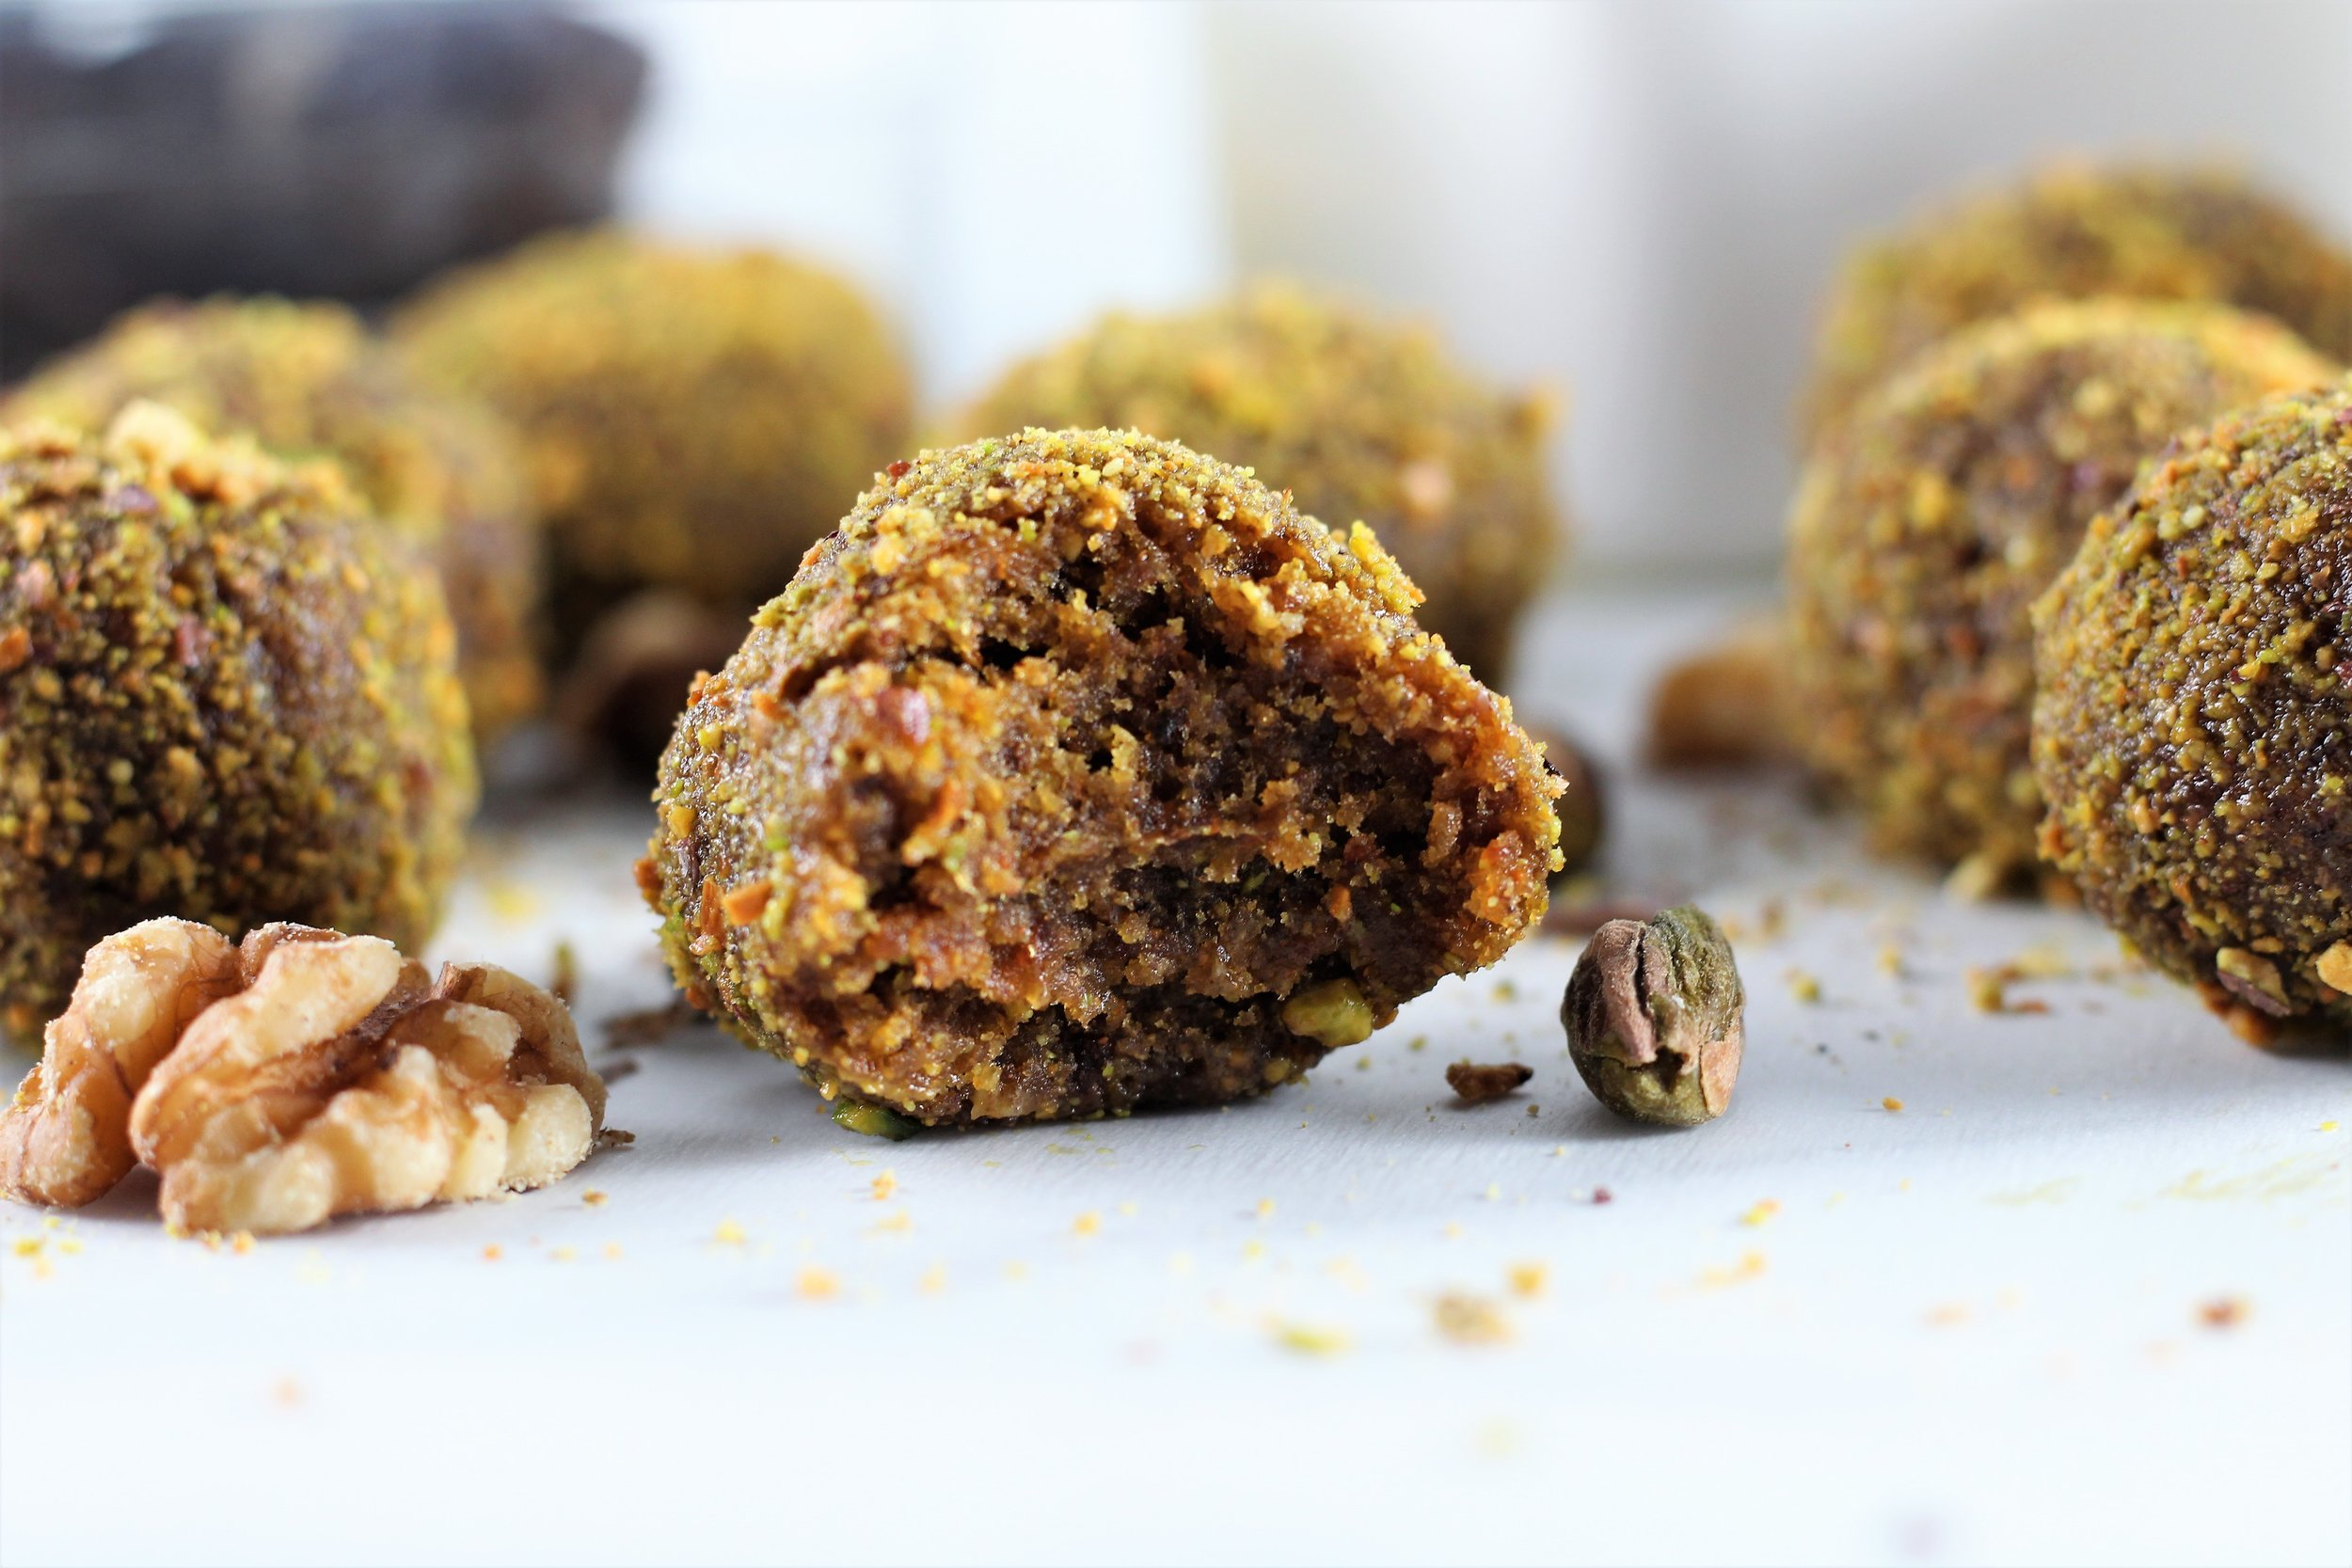 3. No-Bake Pistachio Walnut Energy Balls  (10 most popular recipes of 2018)  With only 4 ingredients and an on trend topic, it's no surprise these easy and flavorful; energy balls made this list.